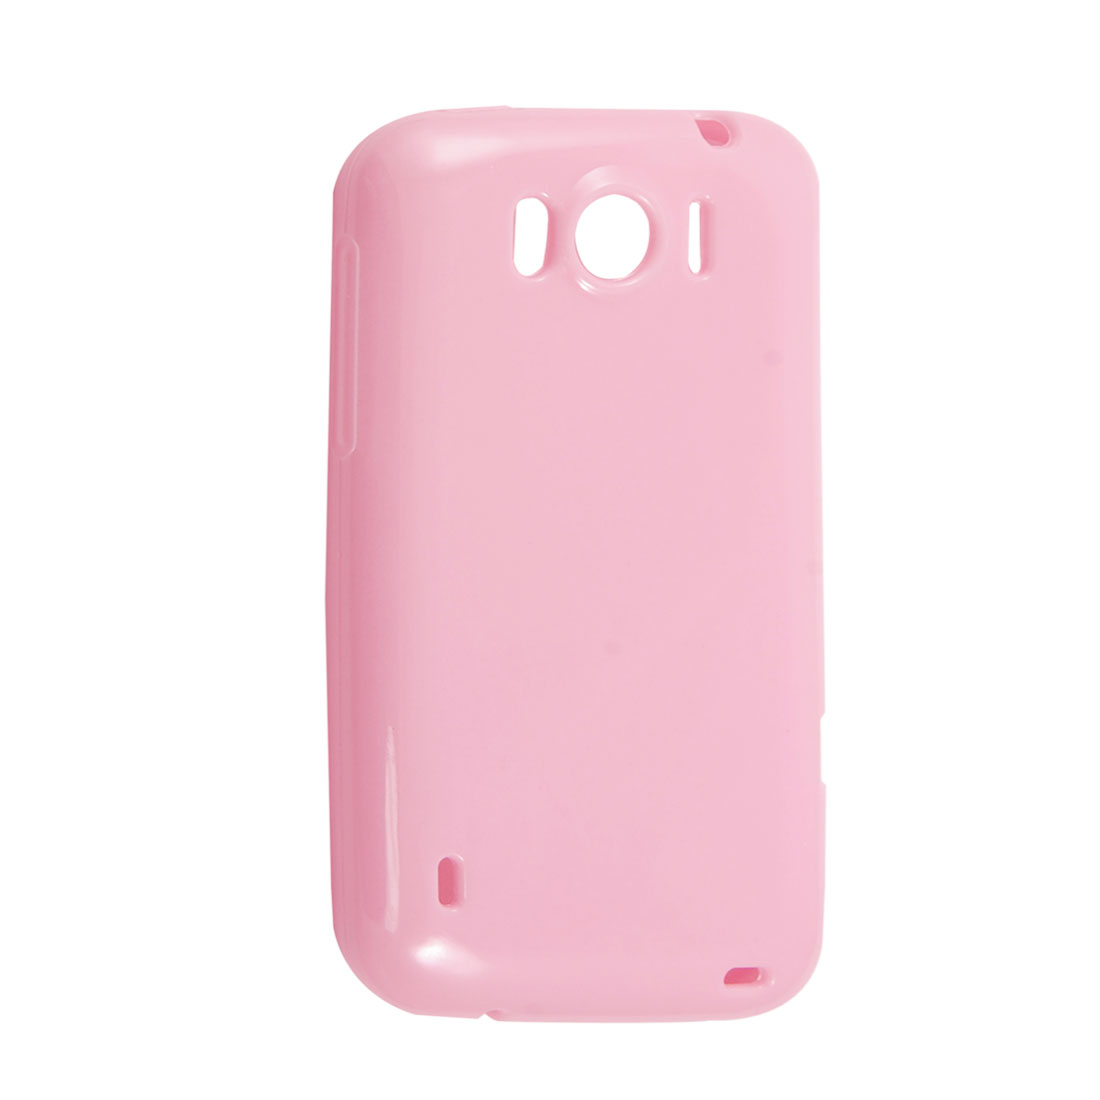 Pink Smooth Soft Plastic Protector Cover for HTC Sensation XL X315E G21